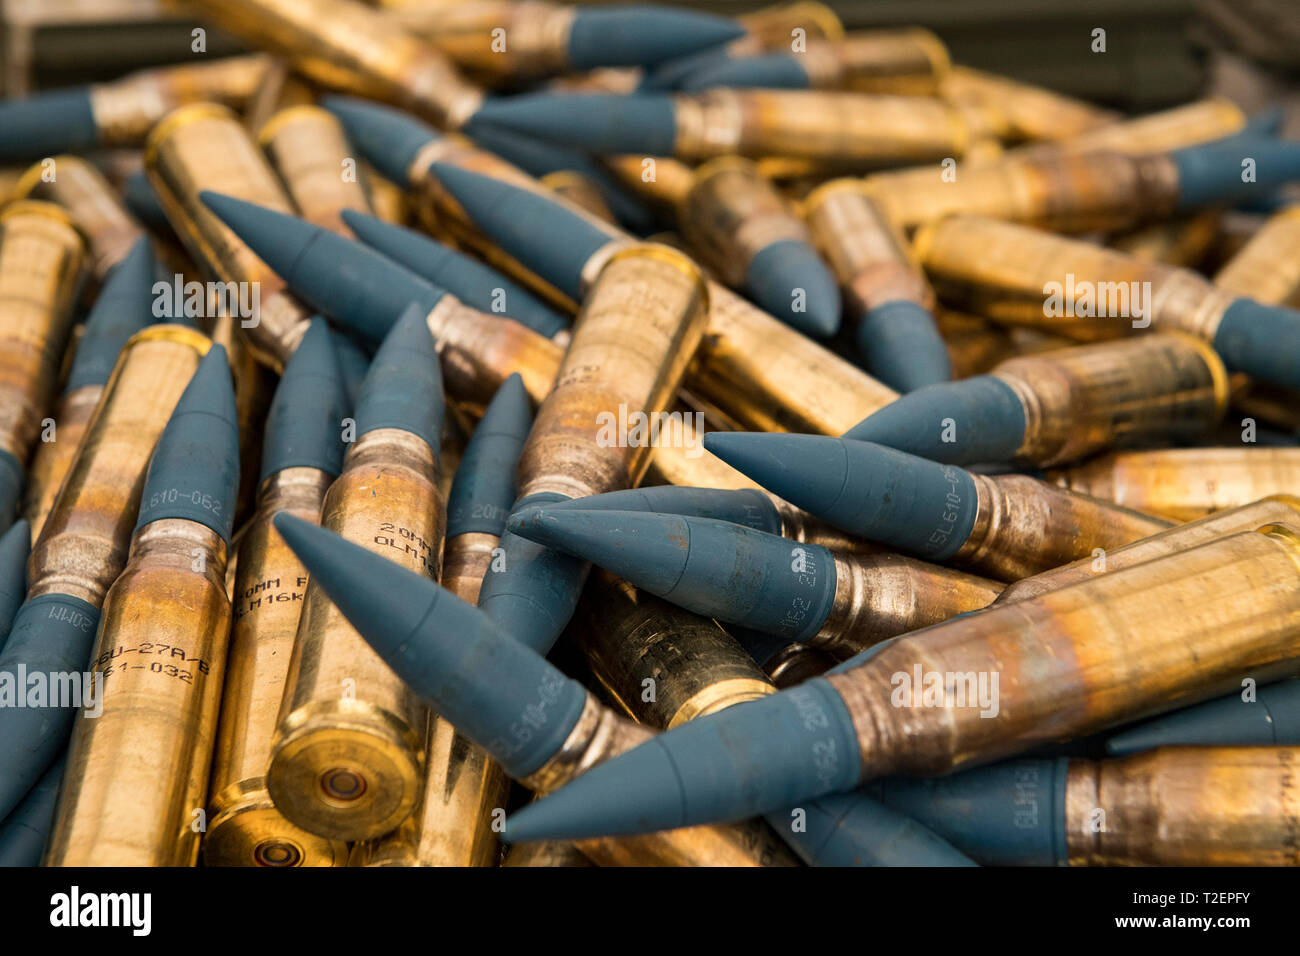 20mm Stock Photos & 20mm Stock Images - Page 2 - Alamy